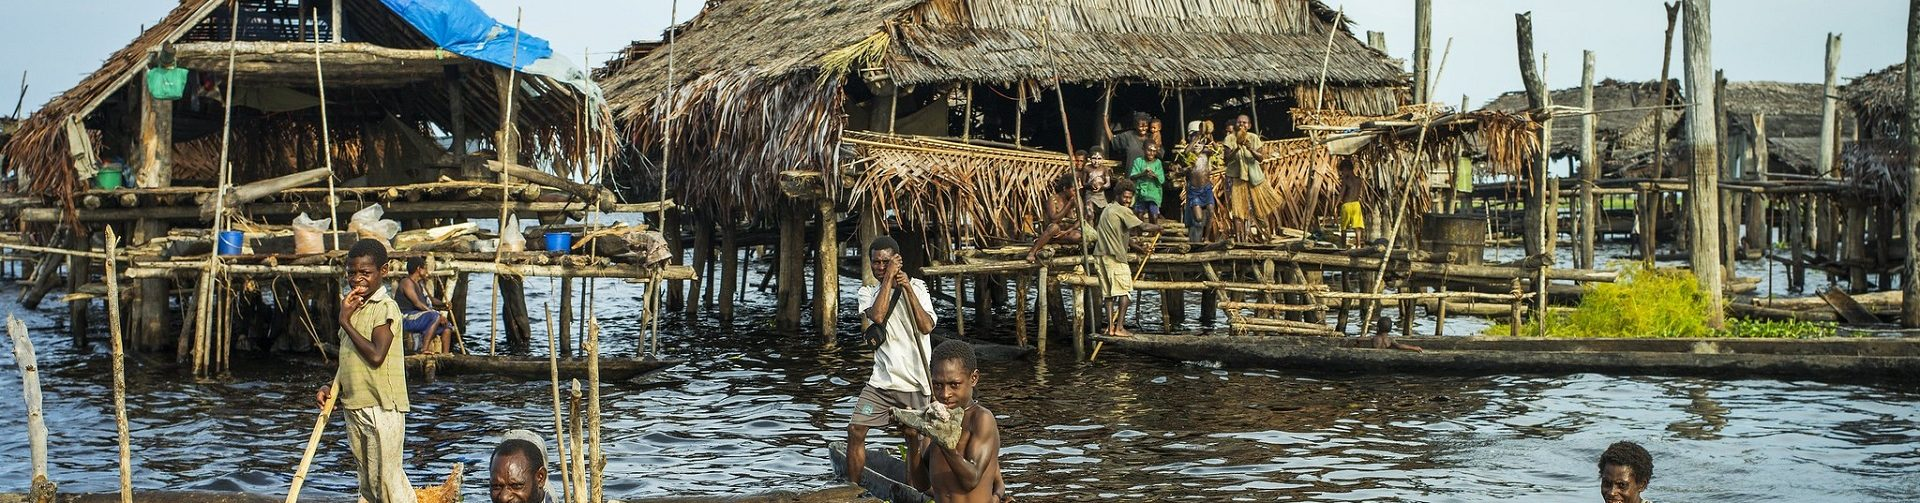 New data offers insights into rural poverty and undernutrition in Papua New Guinea